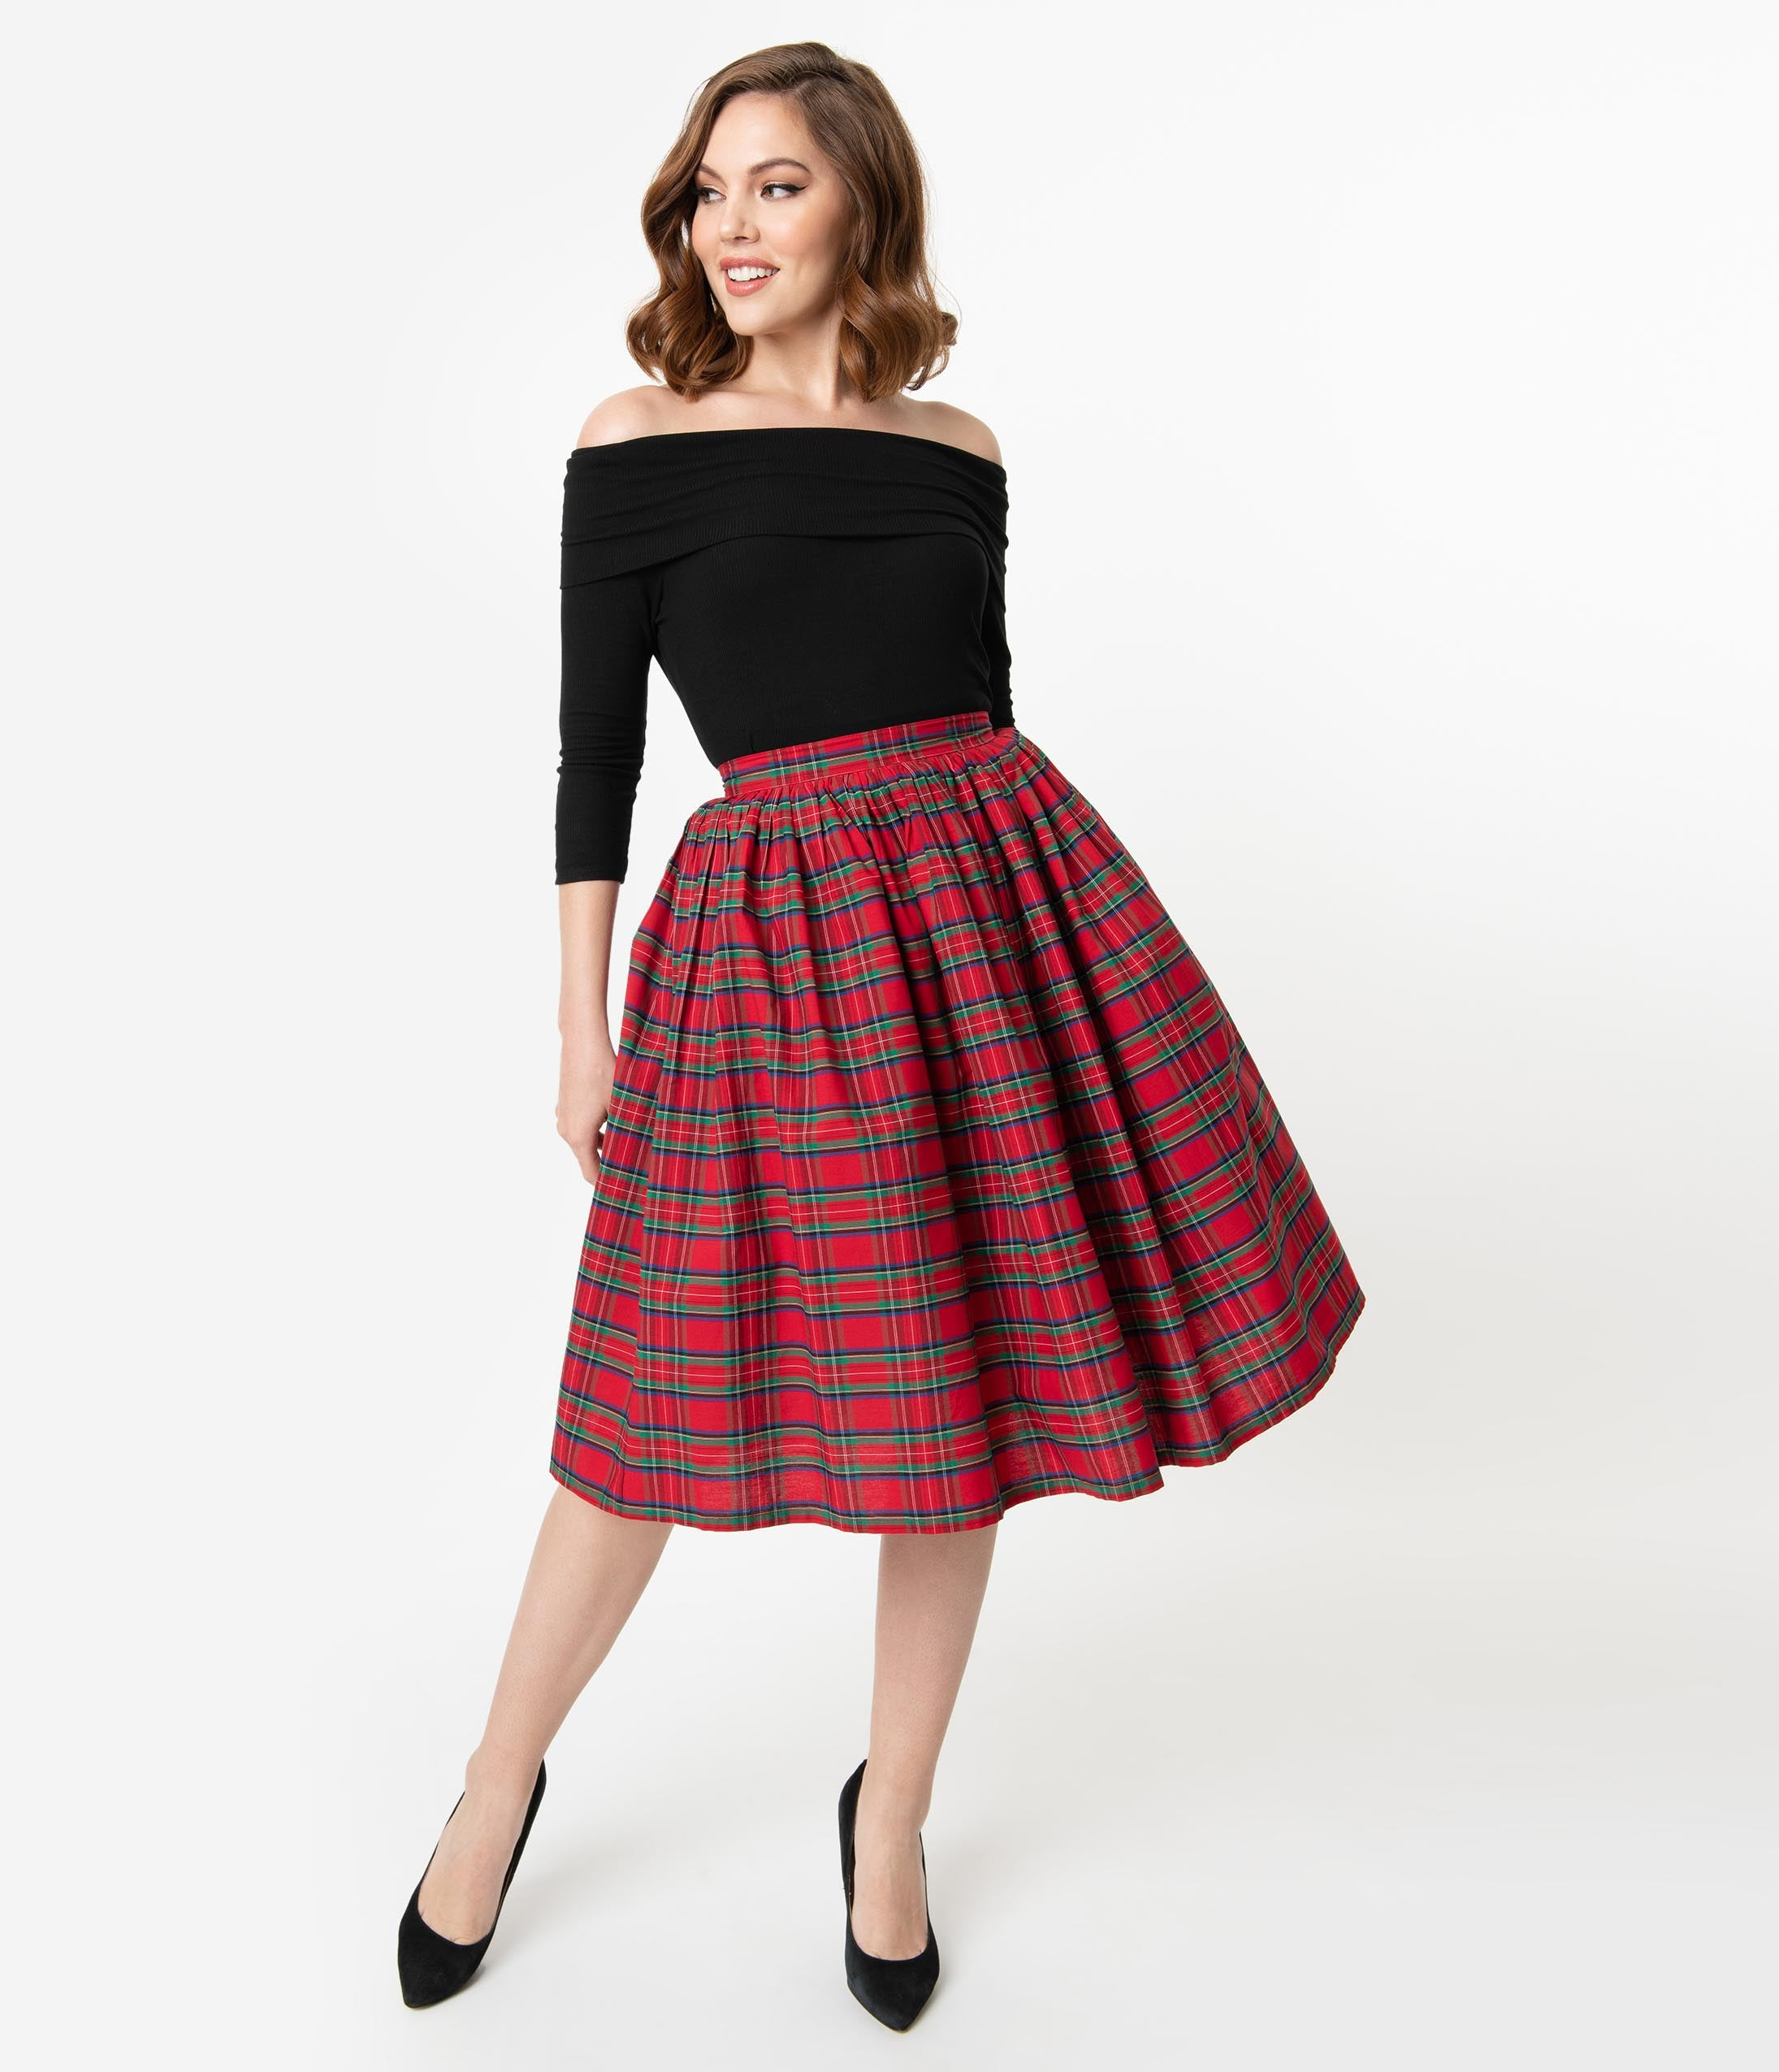 1950s Swing Skirt, Poodle Skirt, Pencil Skirts Unique Vintage 1950S Red Plaid Print High Waist Circle Swing Skirt $58.00 AT vintagedancer.com